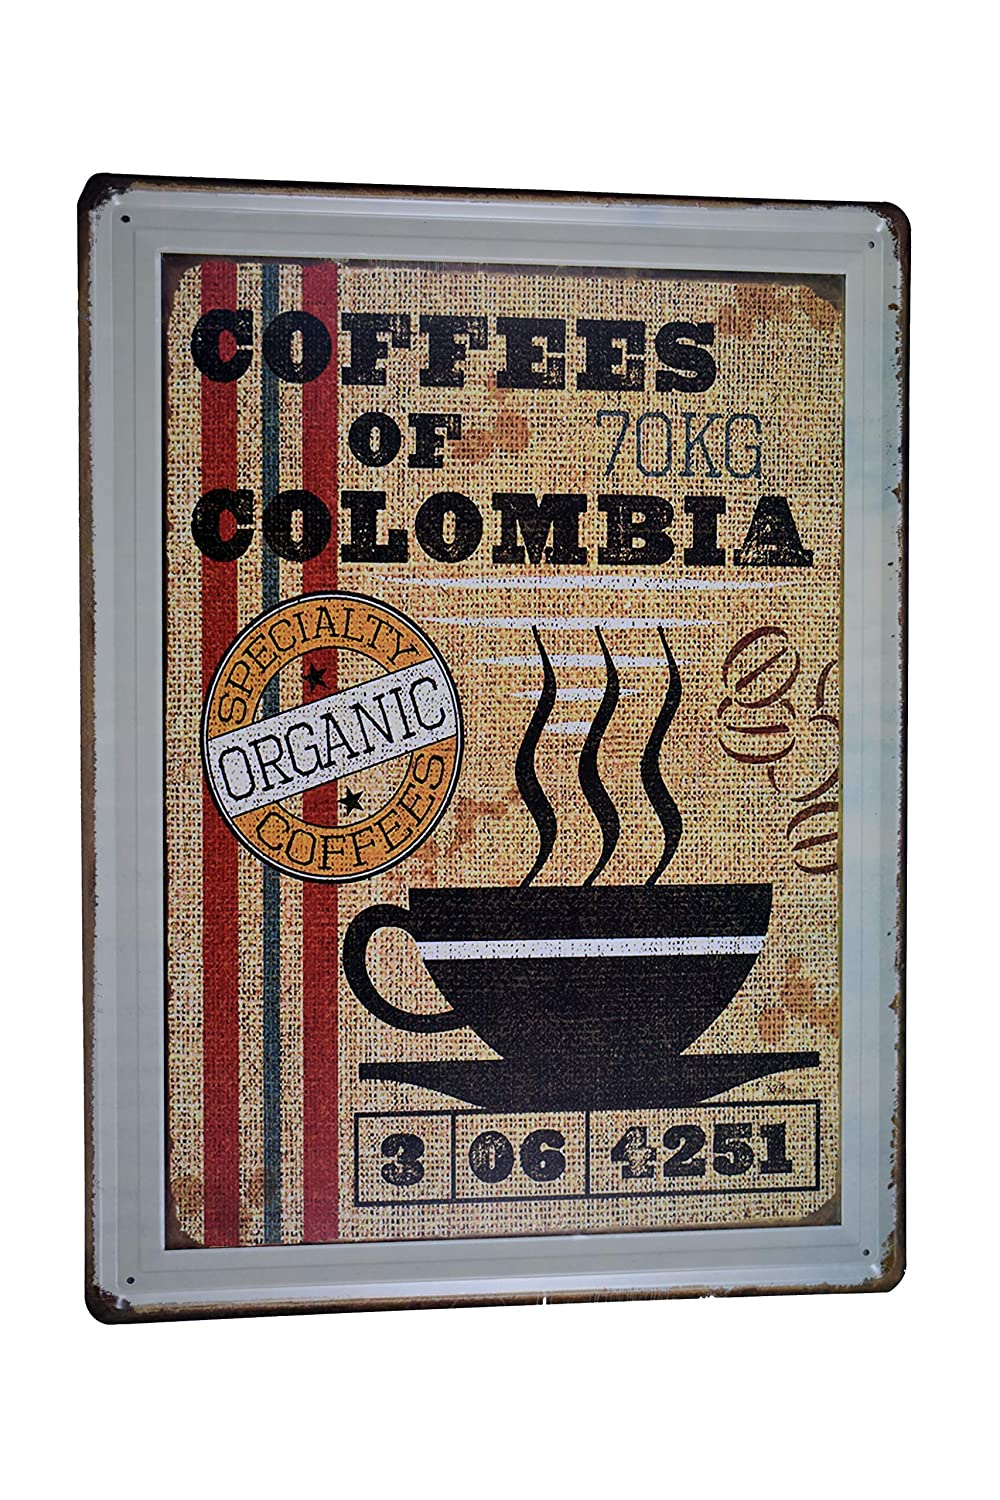 Amazon.com: H&K Coffee Around The World Retro Metal Tin Sign Posters Café Diner Restaurant Wall Decor 12X16-Inch: Home & Kitchen